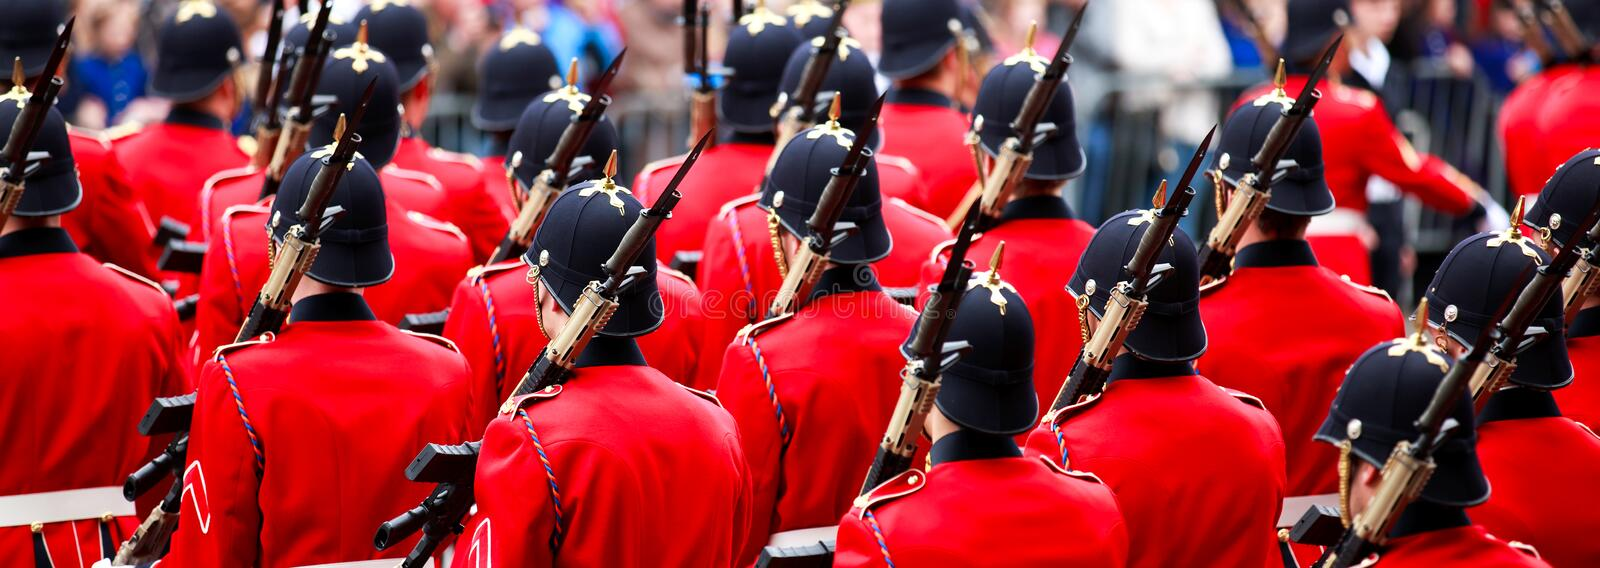 Download Cavalry editorial stock image. Image of people, hats - 21276544